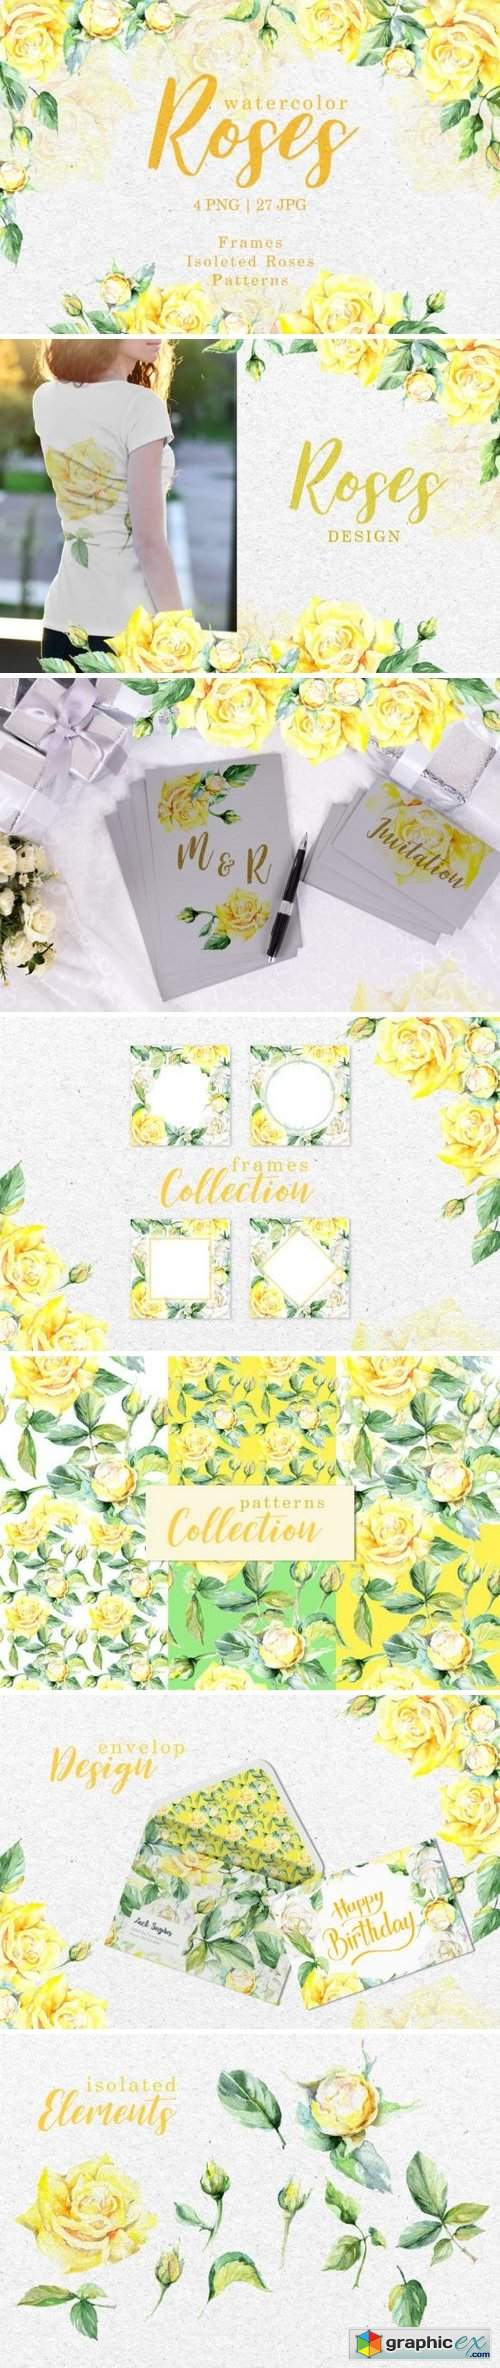 Roses Bright yellow Watercolor png